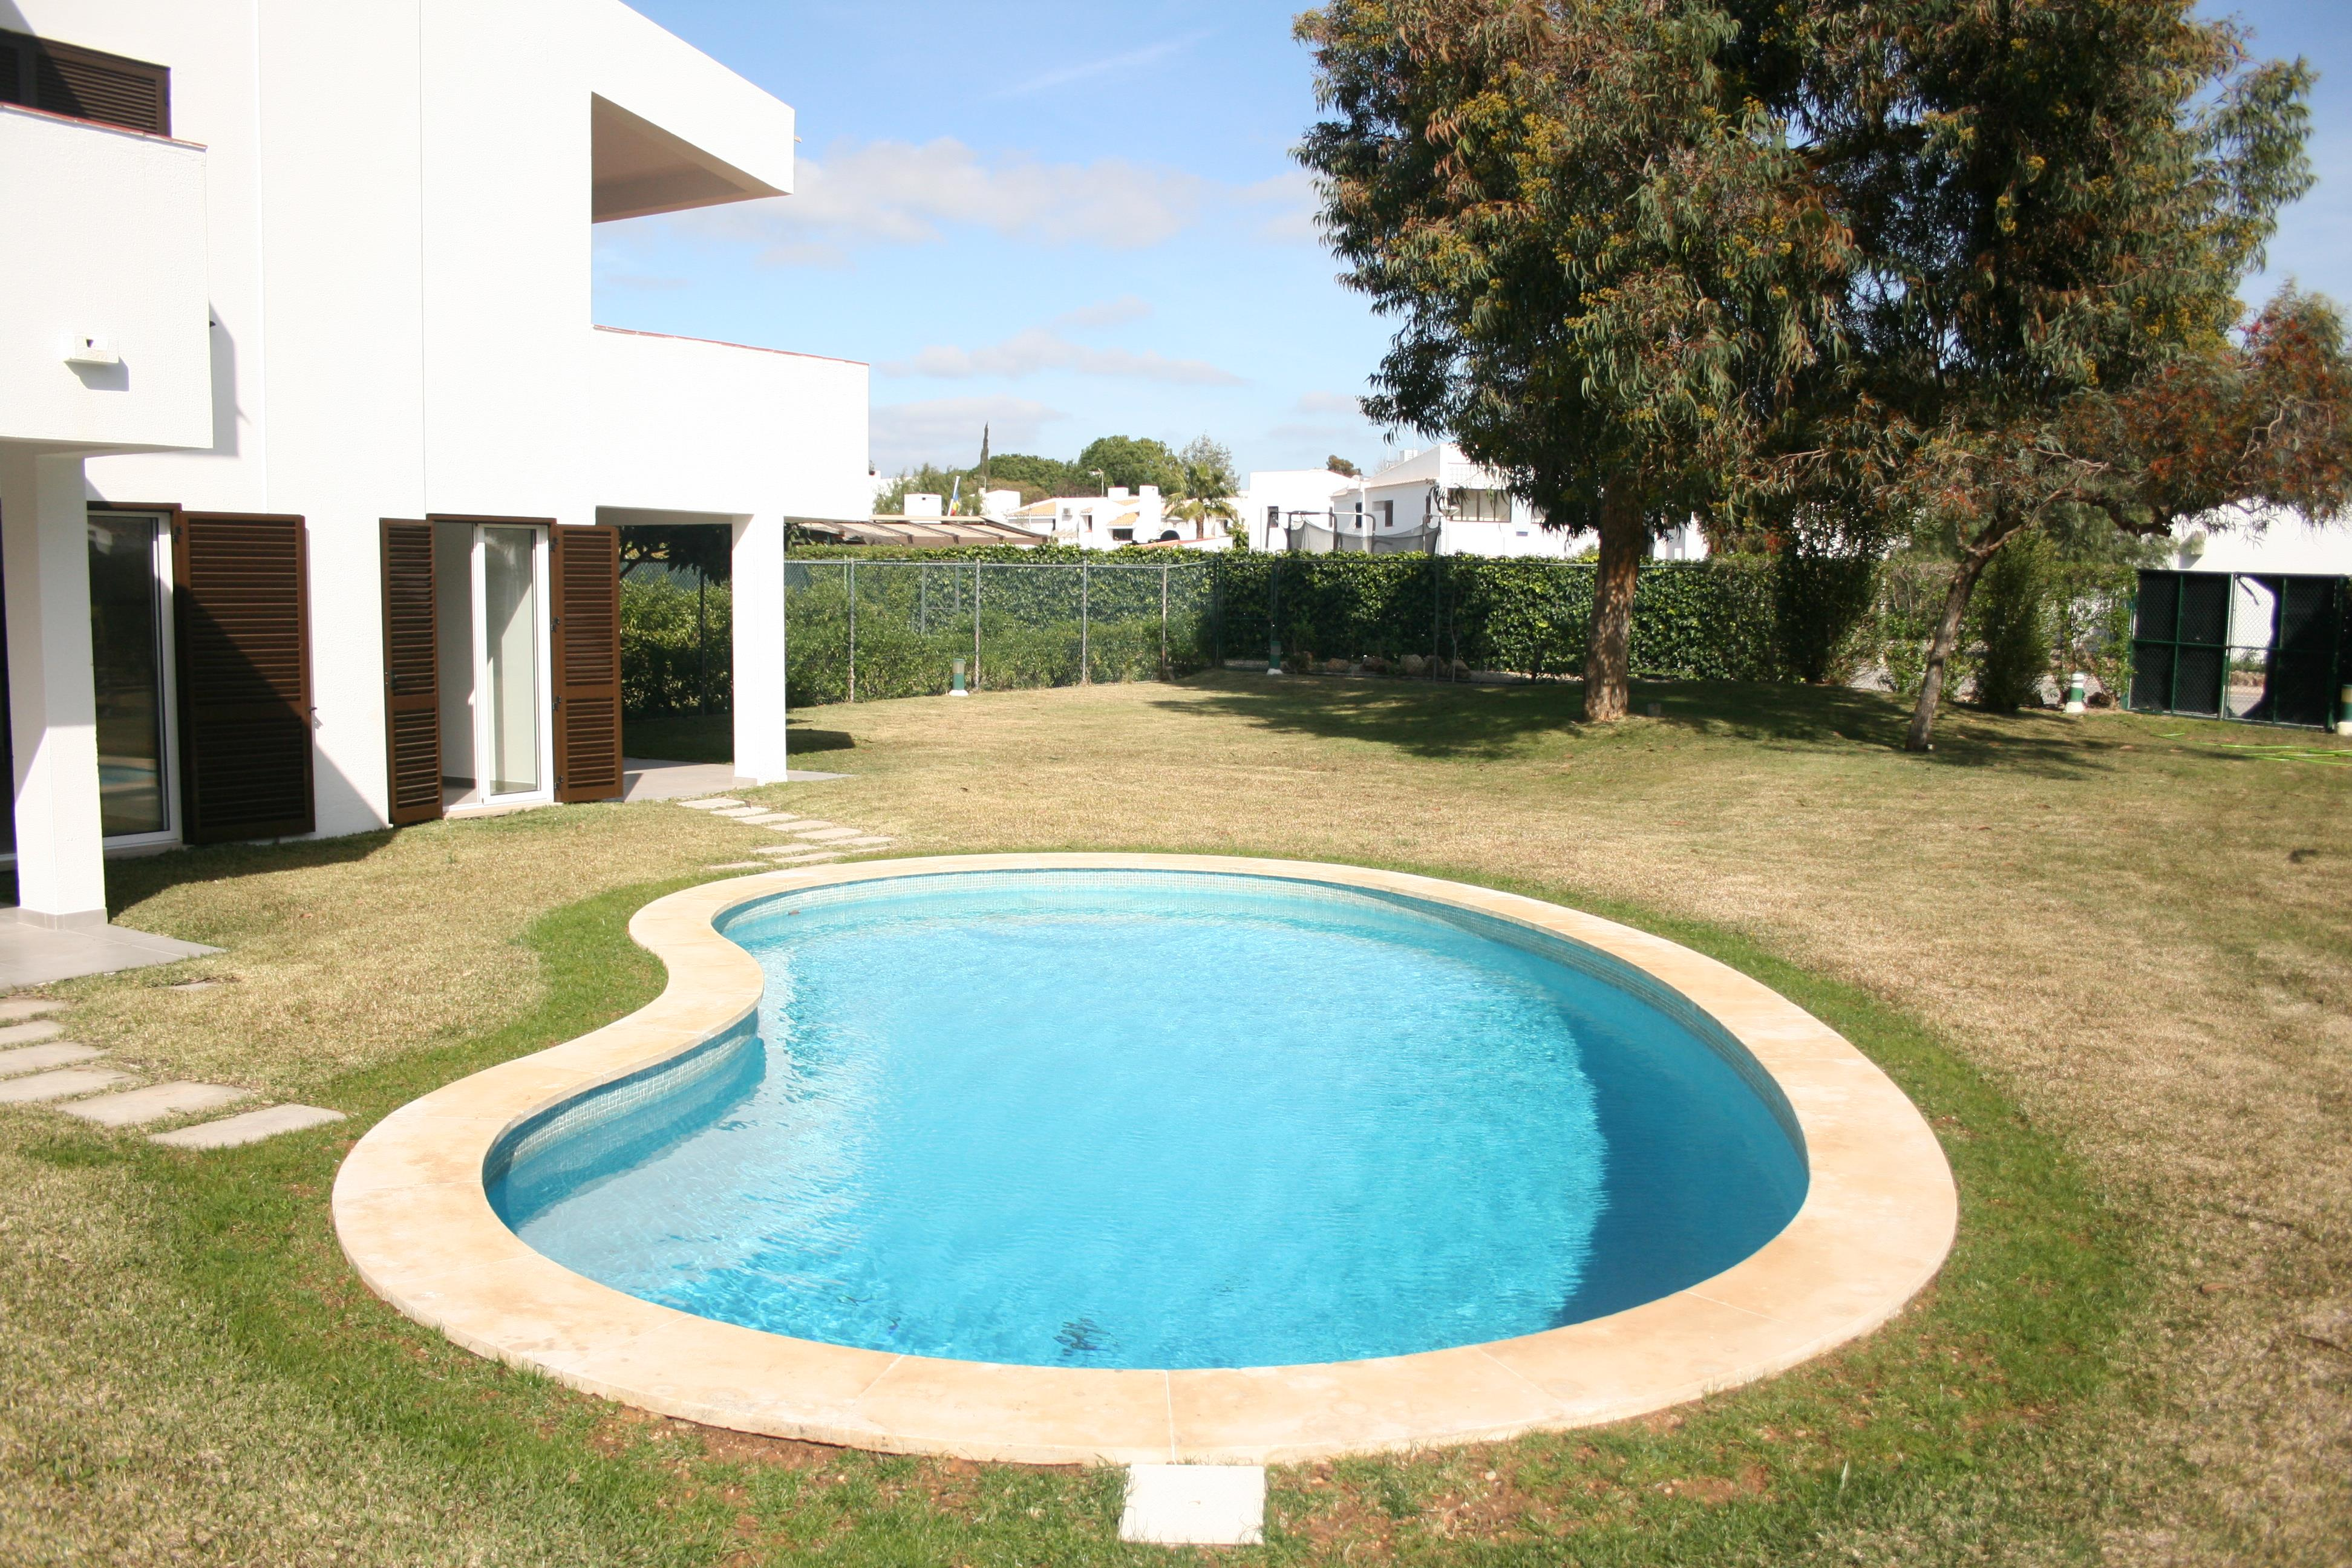 Apartment for Sale at Flat, 3 bedrooms, for Sale Loule, Algarve, 8125-537 Portugal